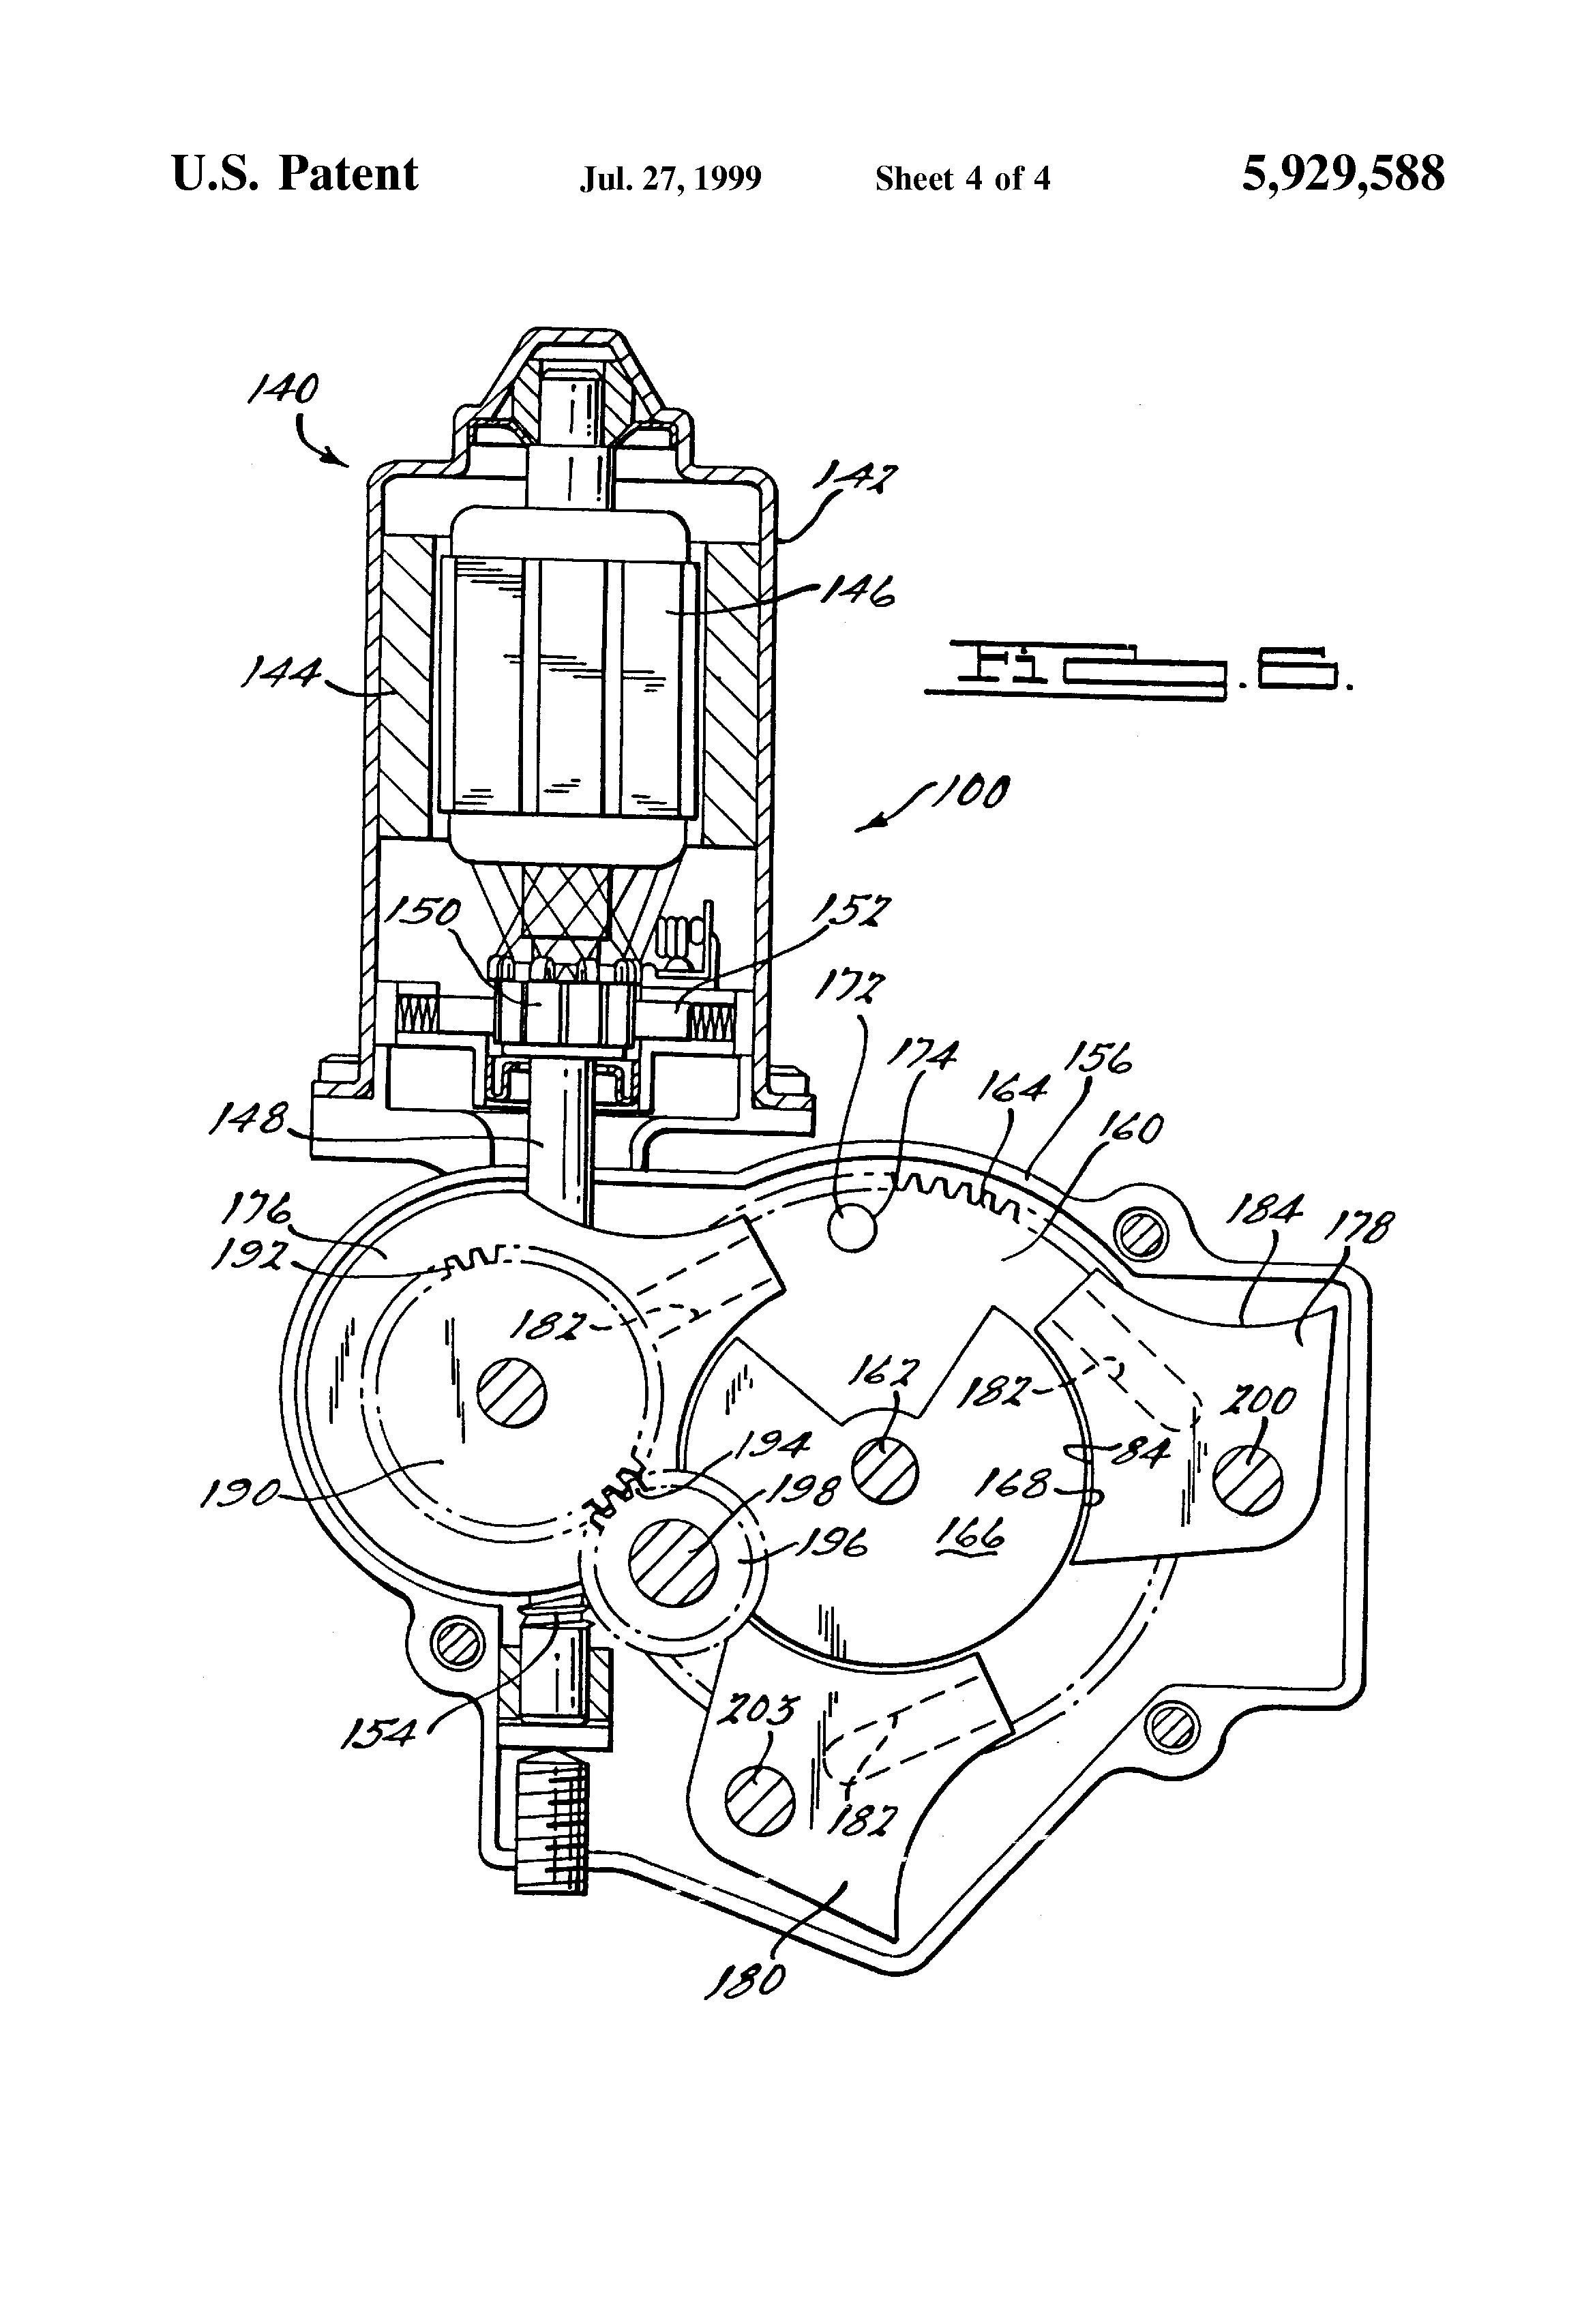 patent us5929588 - electric motor control system for automobile, Wiring diagram